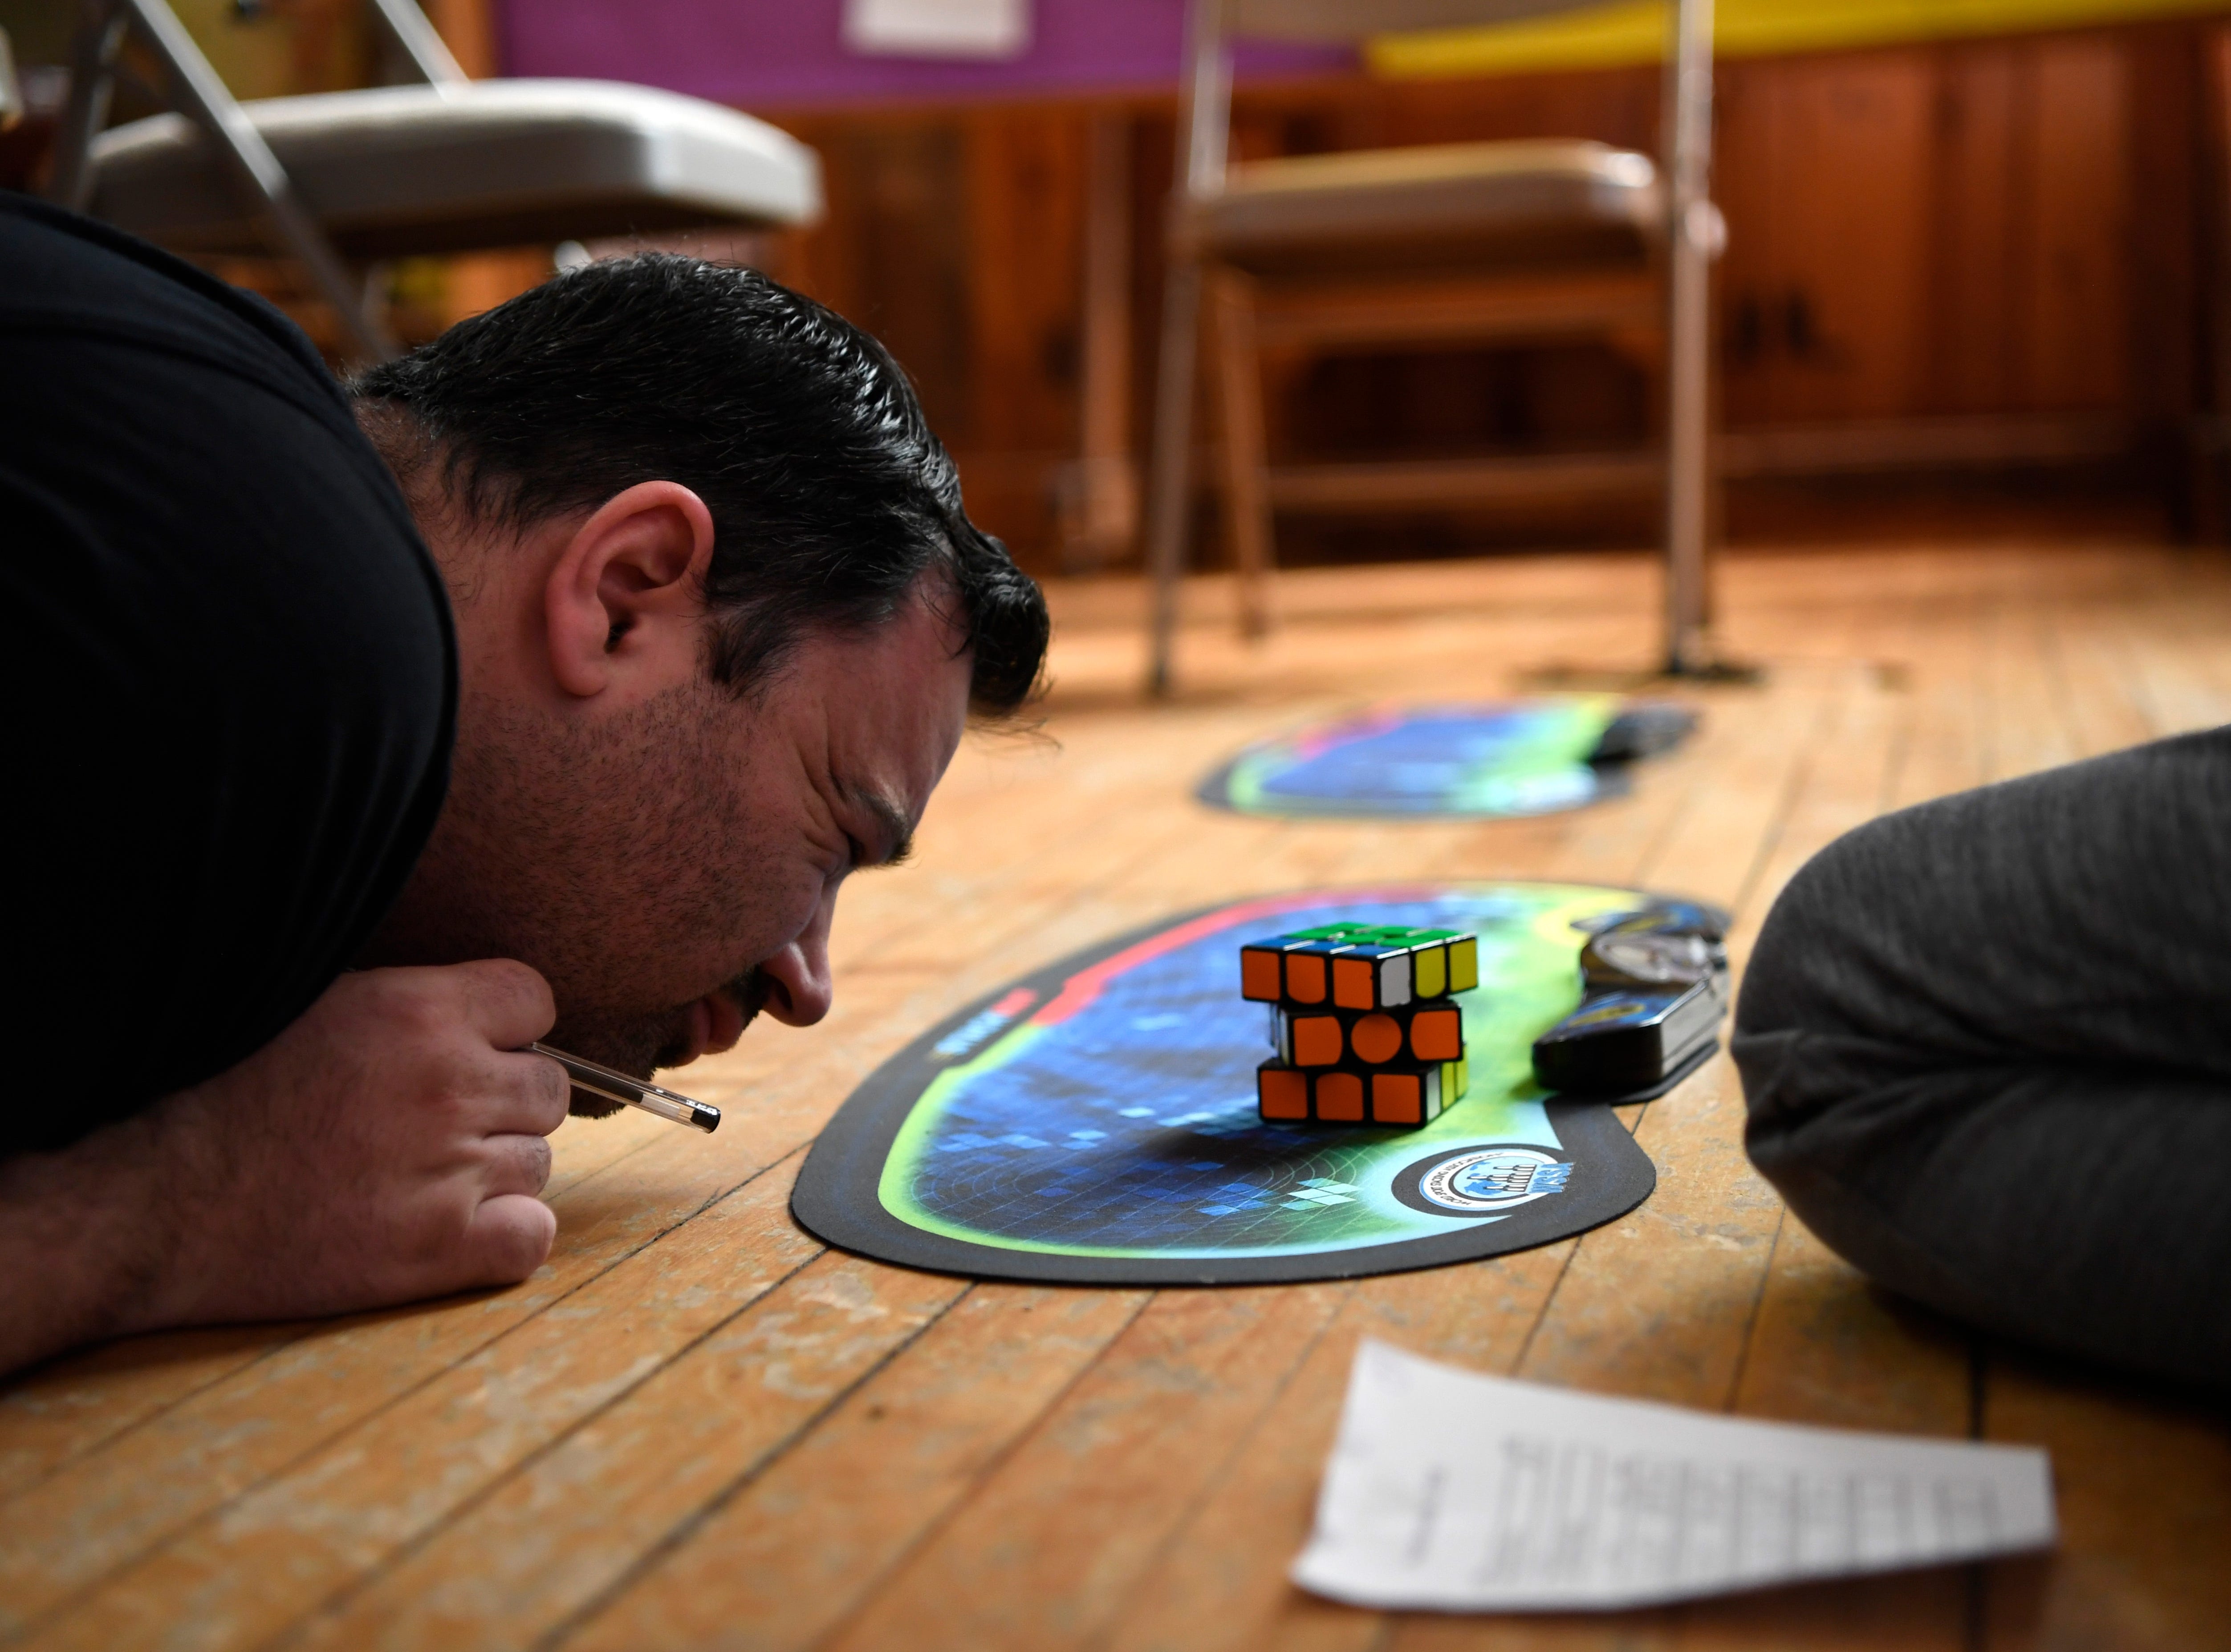 World Cube Association delegate Bob Burton closely inspects a cube during the 3x3x3 cube with feet competition in Rutherford, NJ on Saturday, June 9, 2018.